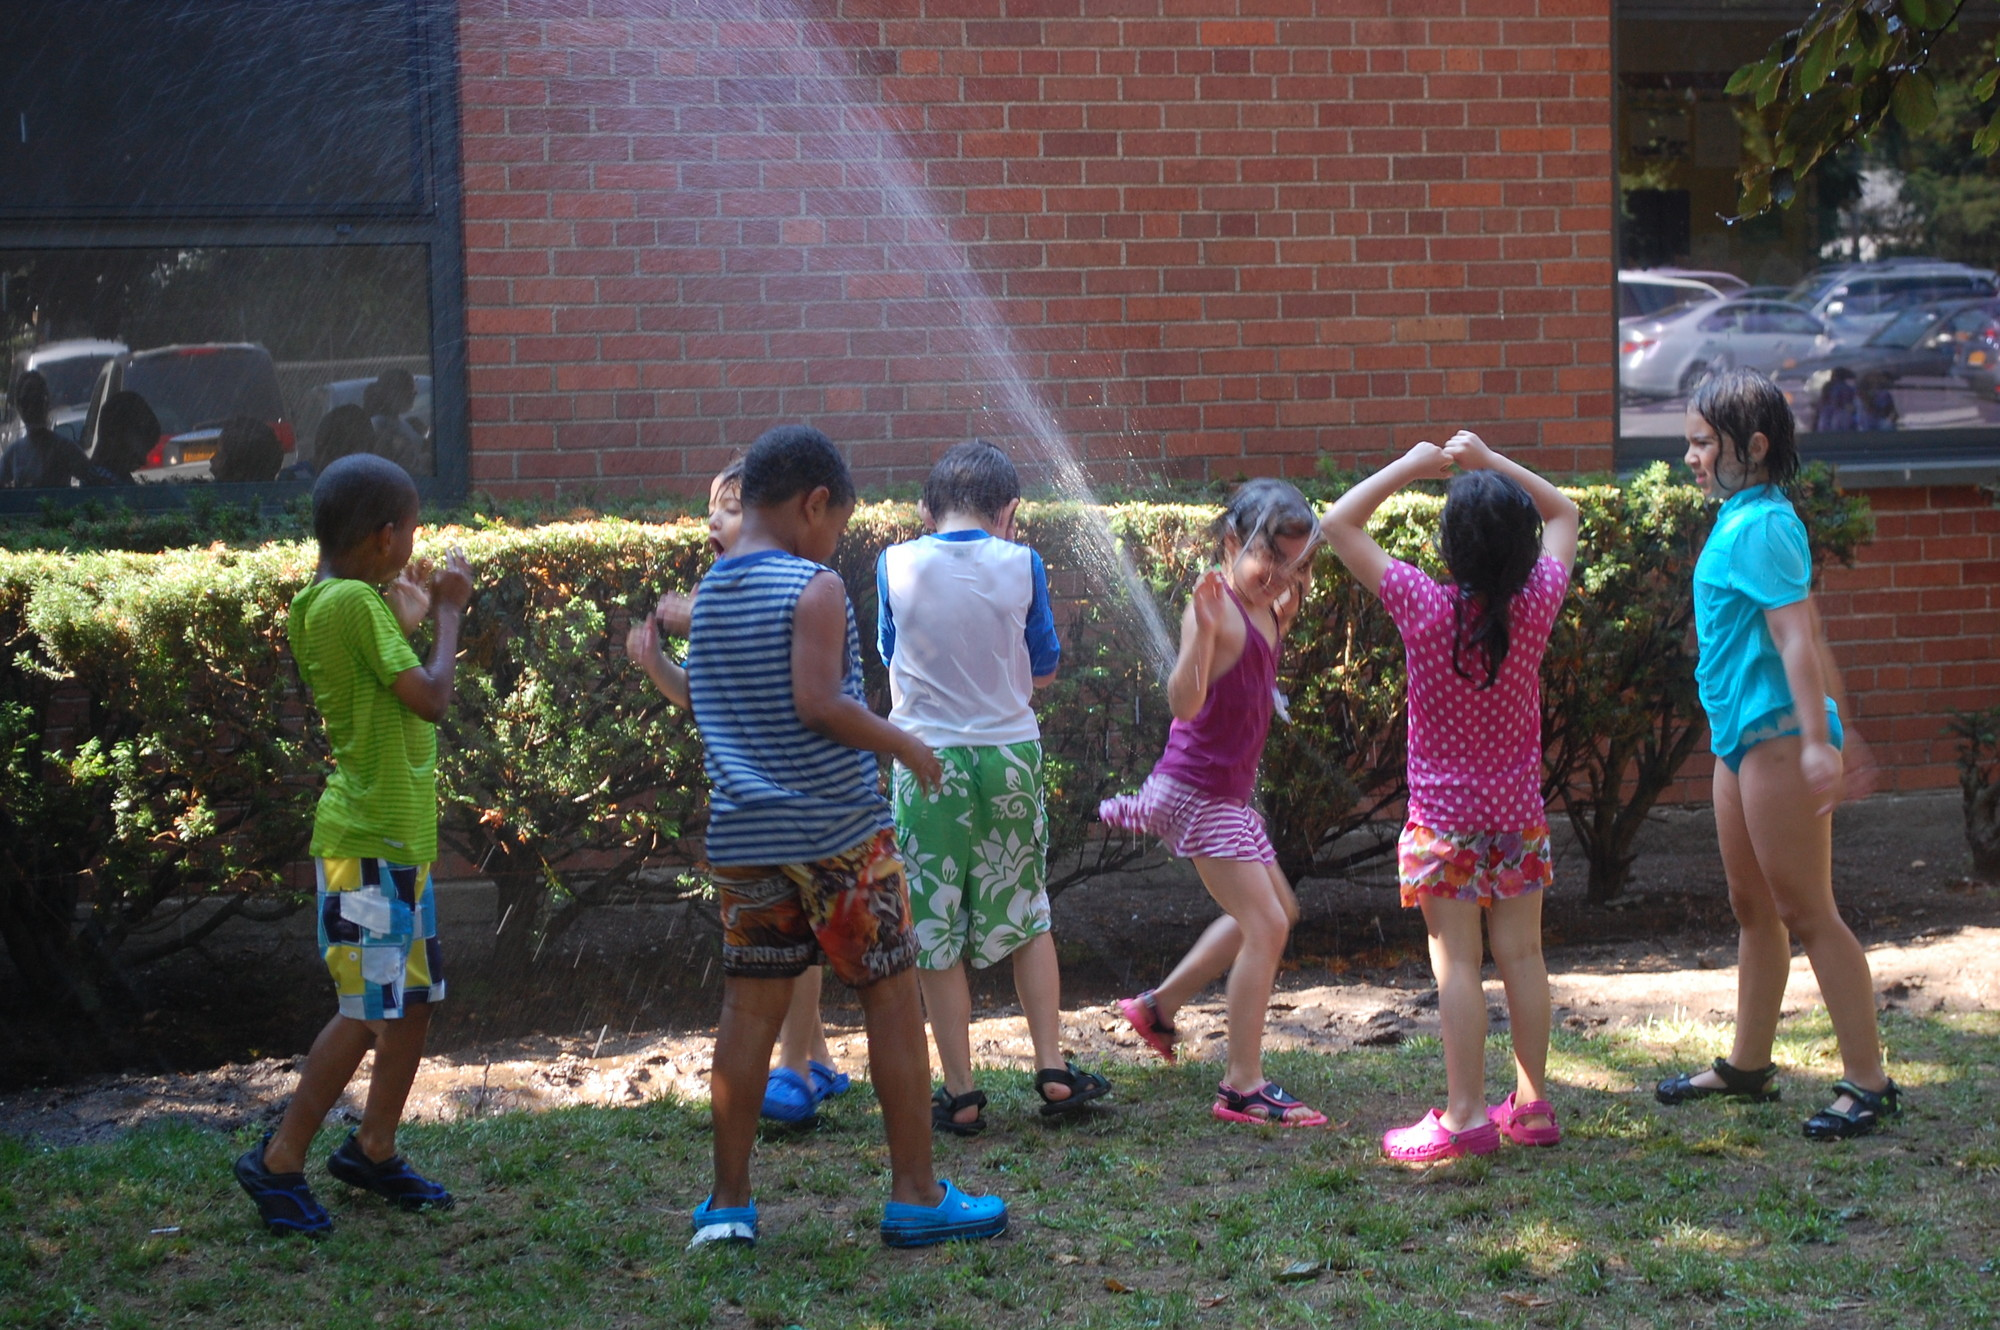 On a hot July day, the sprinkler provided much needed refreshment.